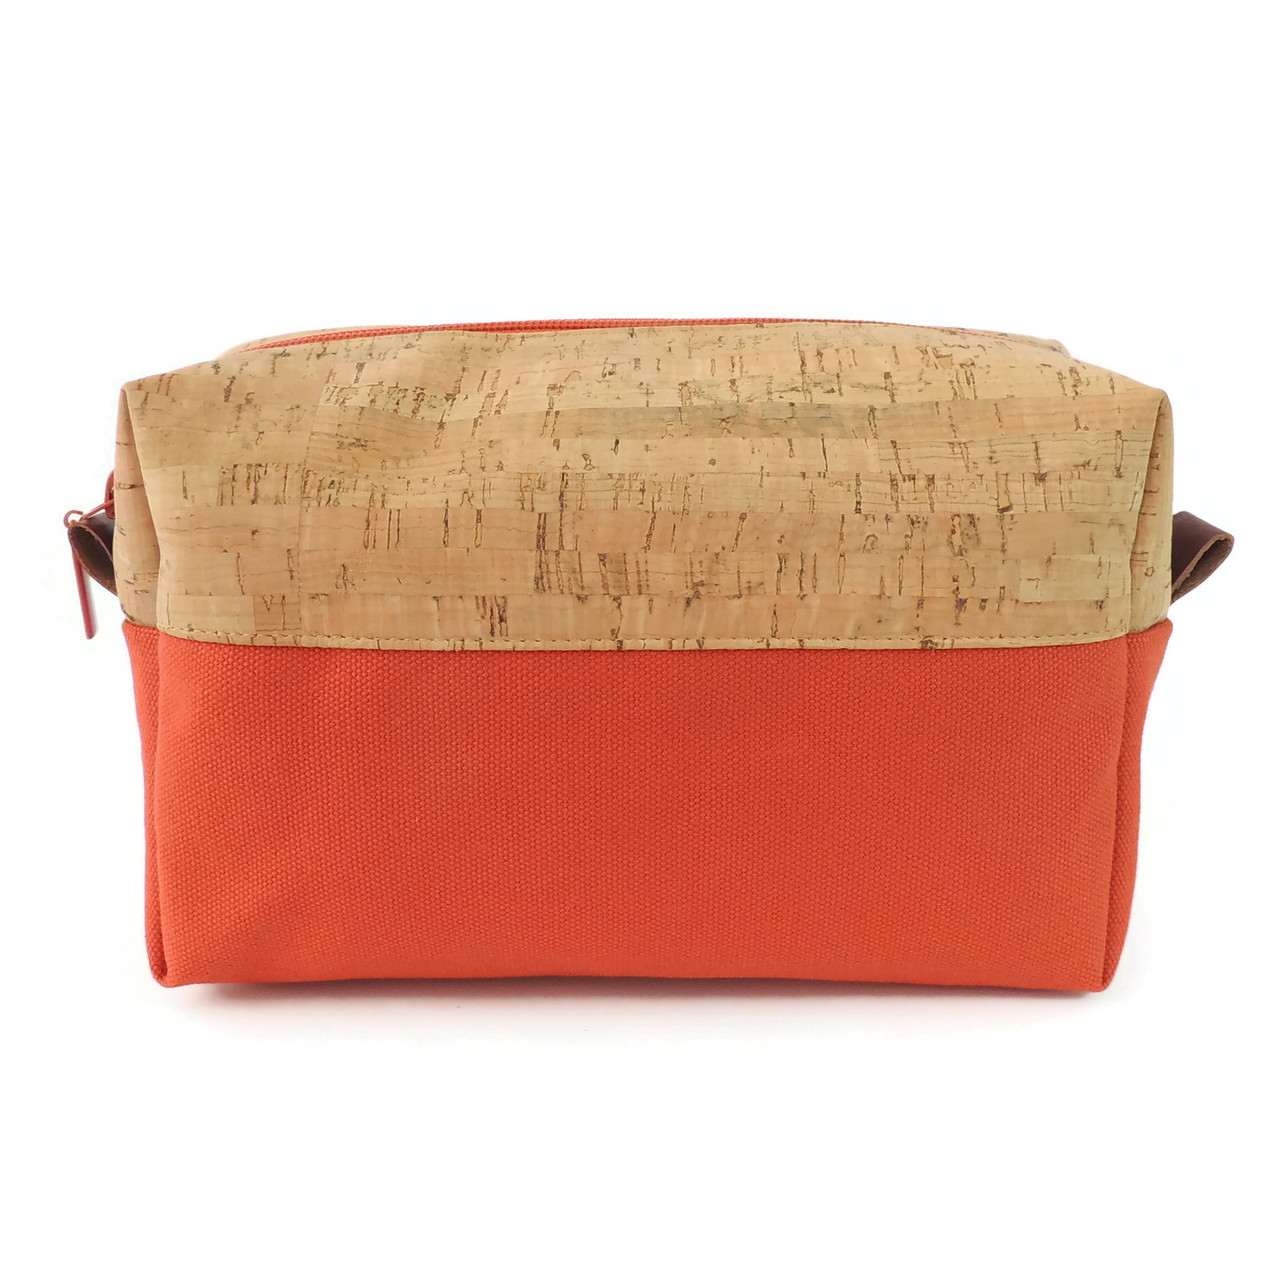 Makeup Bag in Cork Dash with Orange Canvas